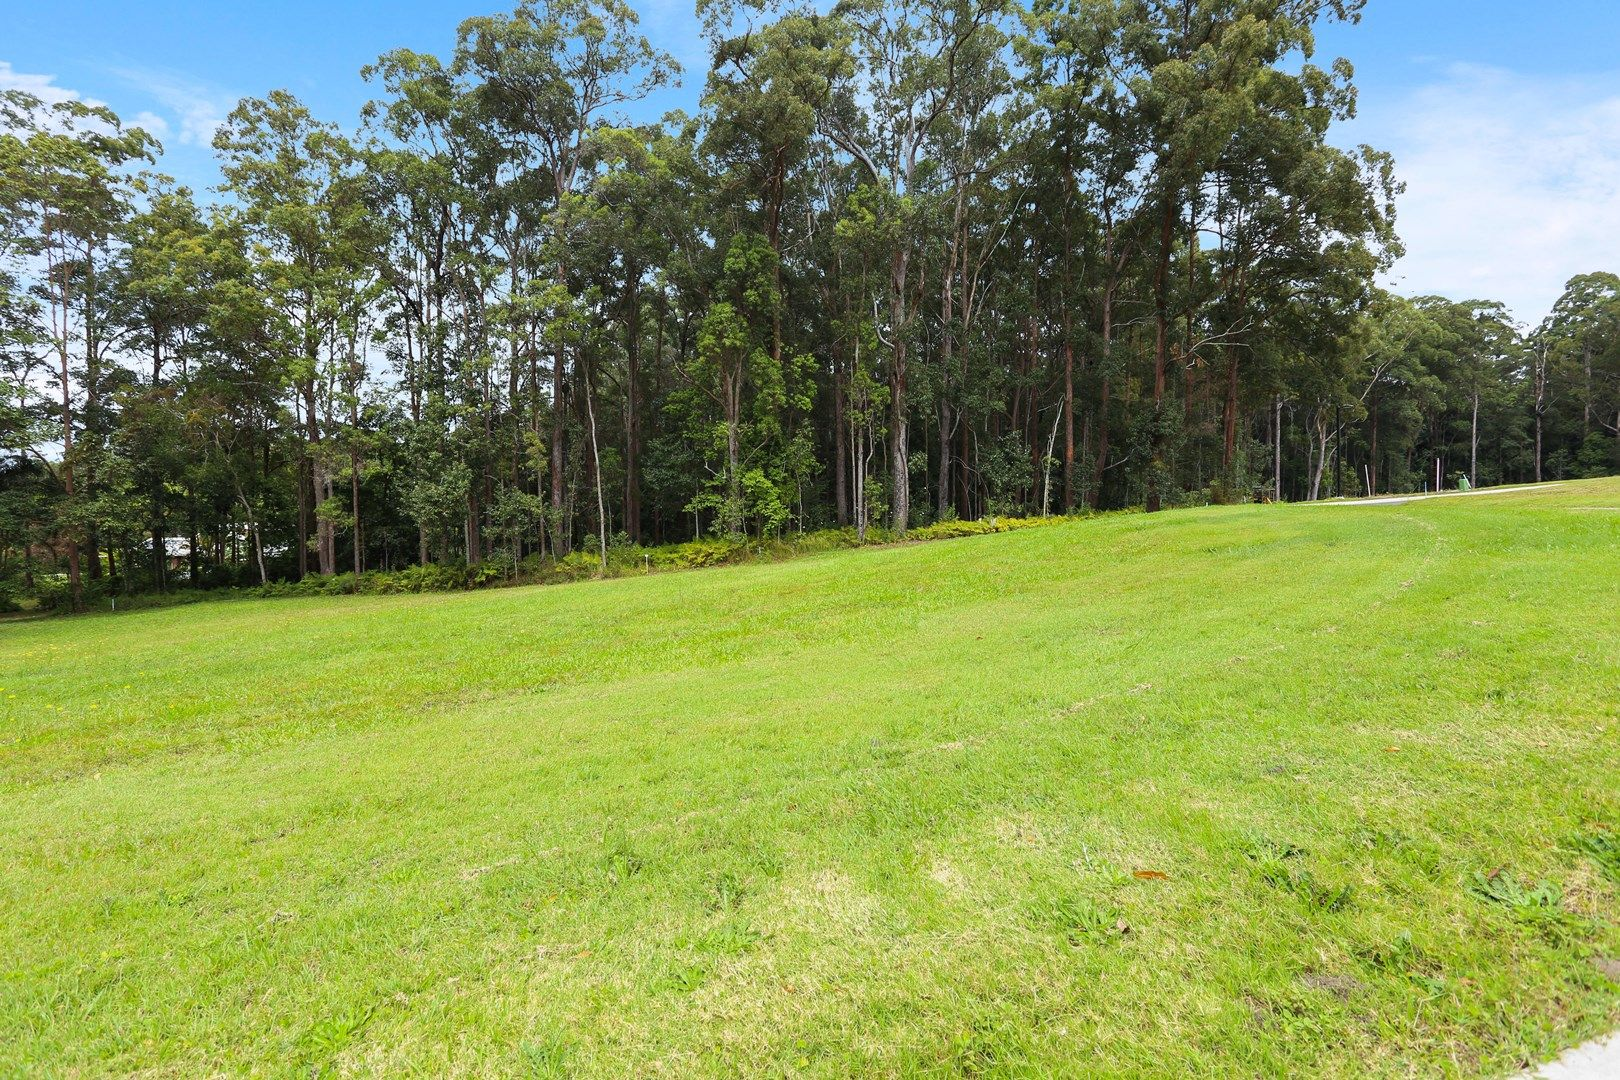 Lot 5/84 Taylors Road, Tanawha QLD 4556, Image 0